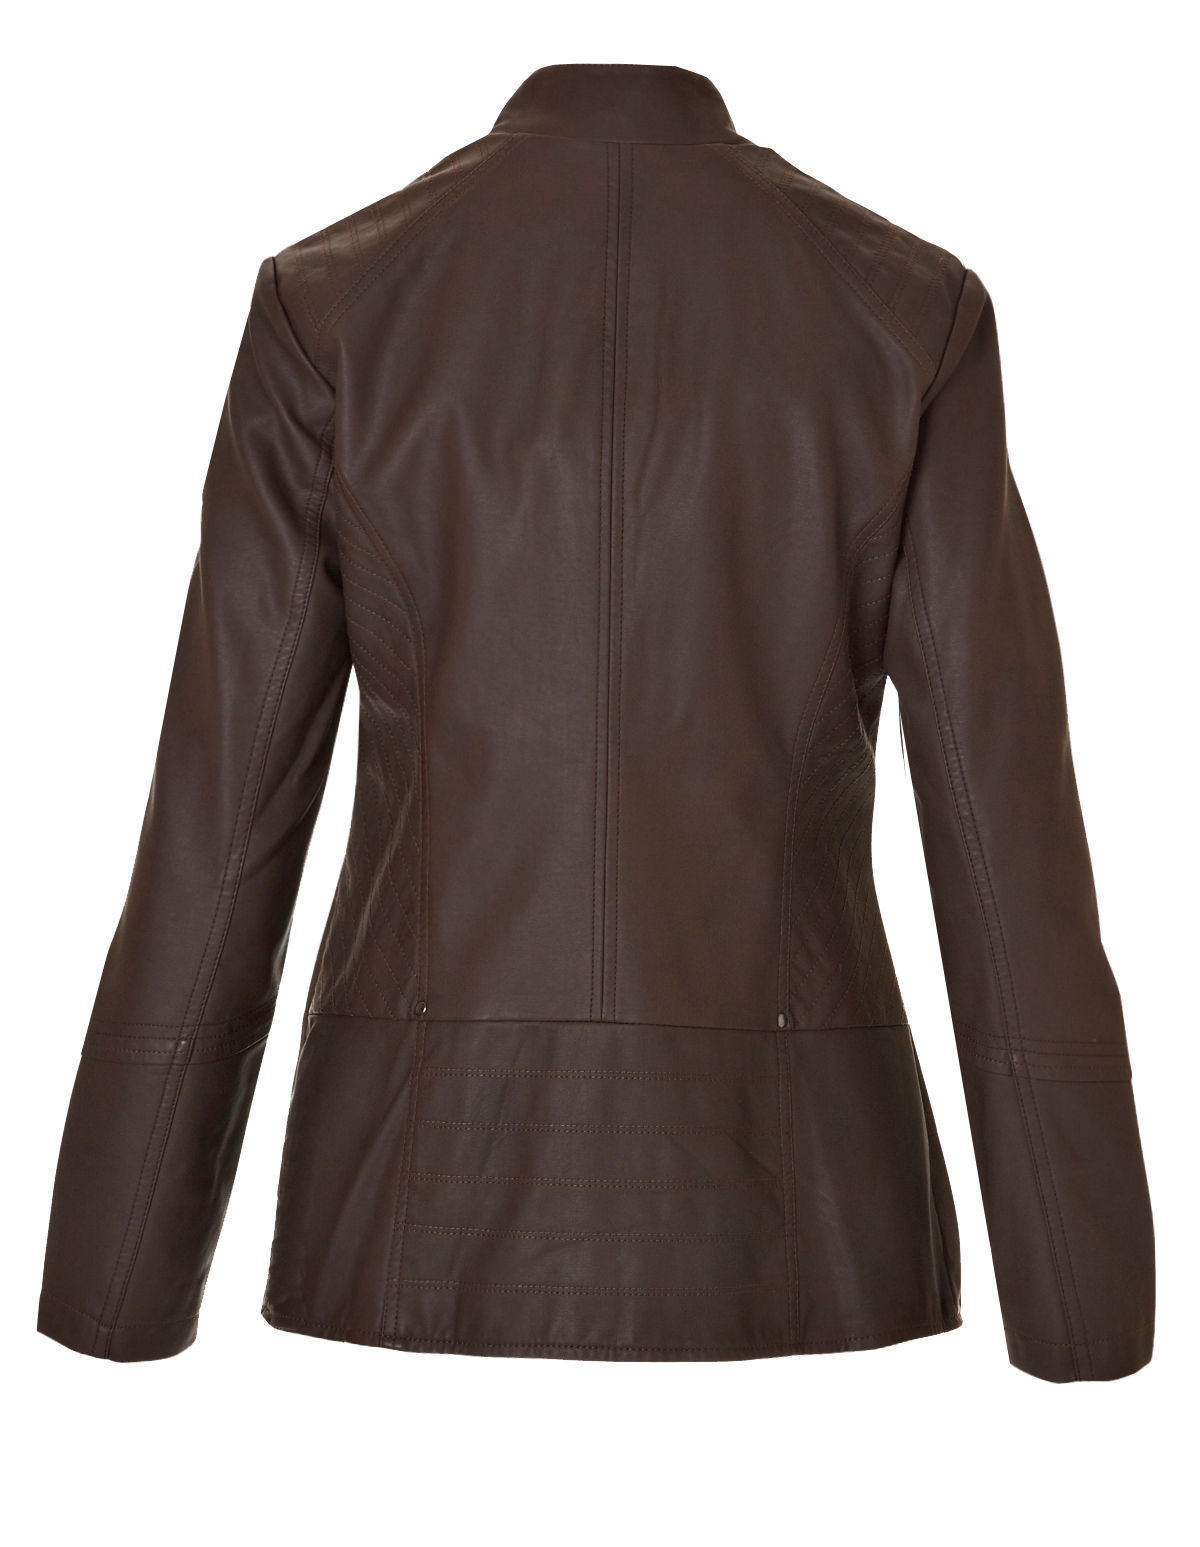 Discover faux leather moto jackets, bomber styles, denim jackets, and more.. United States. My Profile you must notify us immediately by sending an email to F21xMe@Forevercom and identifying the User Content along with an explanation of the Girls Faux Leather Jacket (Kids) QUICK VIEW. $ Girls Metallic Faux Leather Jacket (Kids).